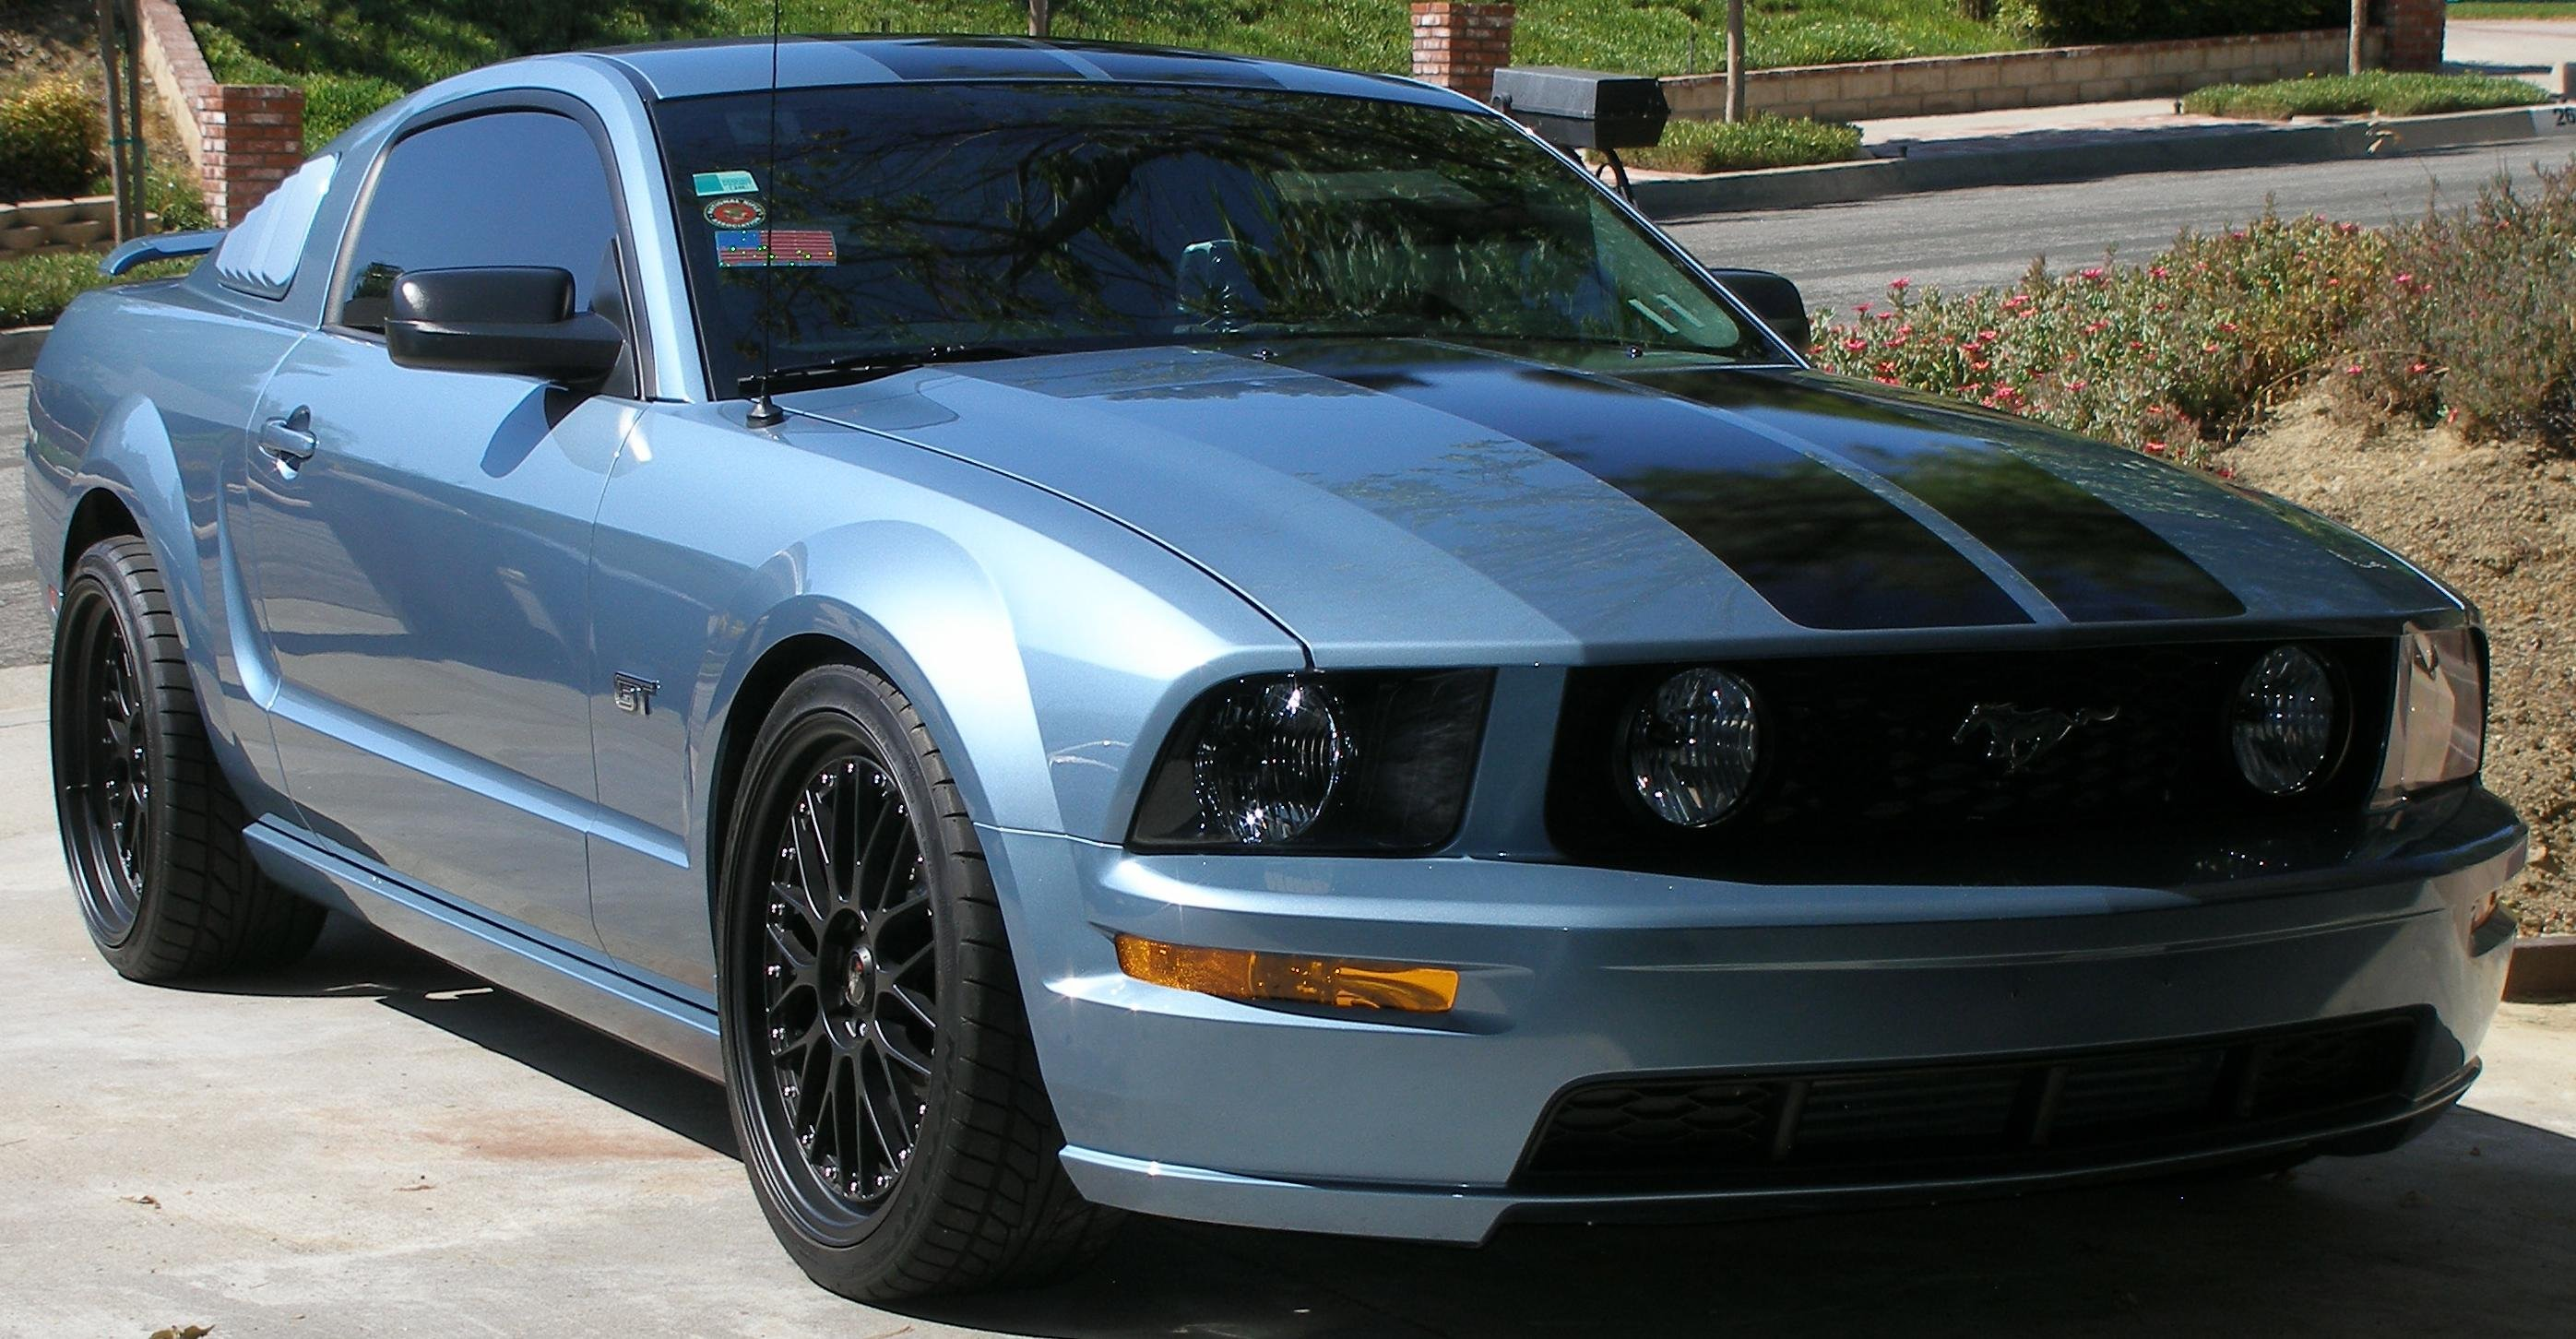 Windveil blue 2006 Mustang black or white stripes  Ford Mustang